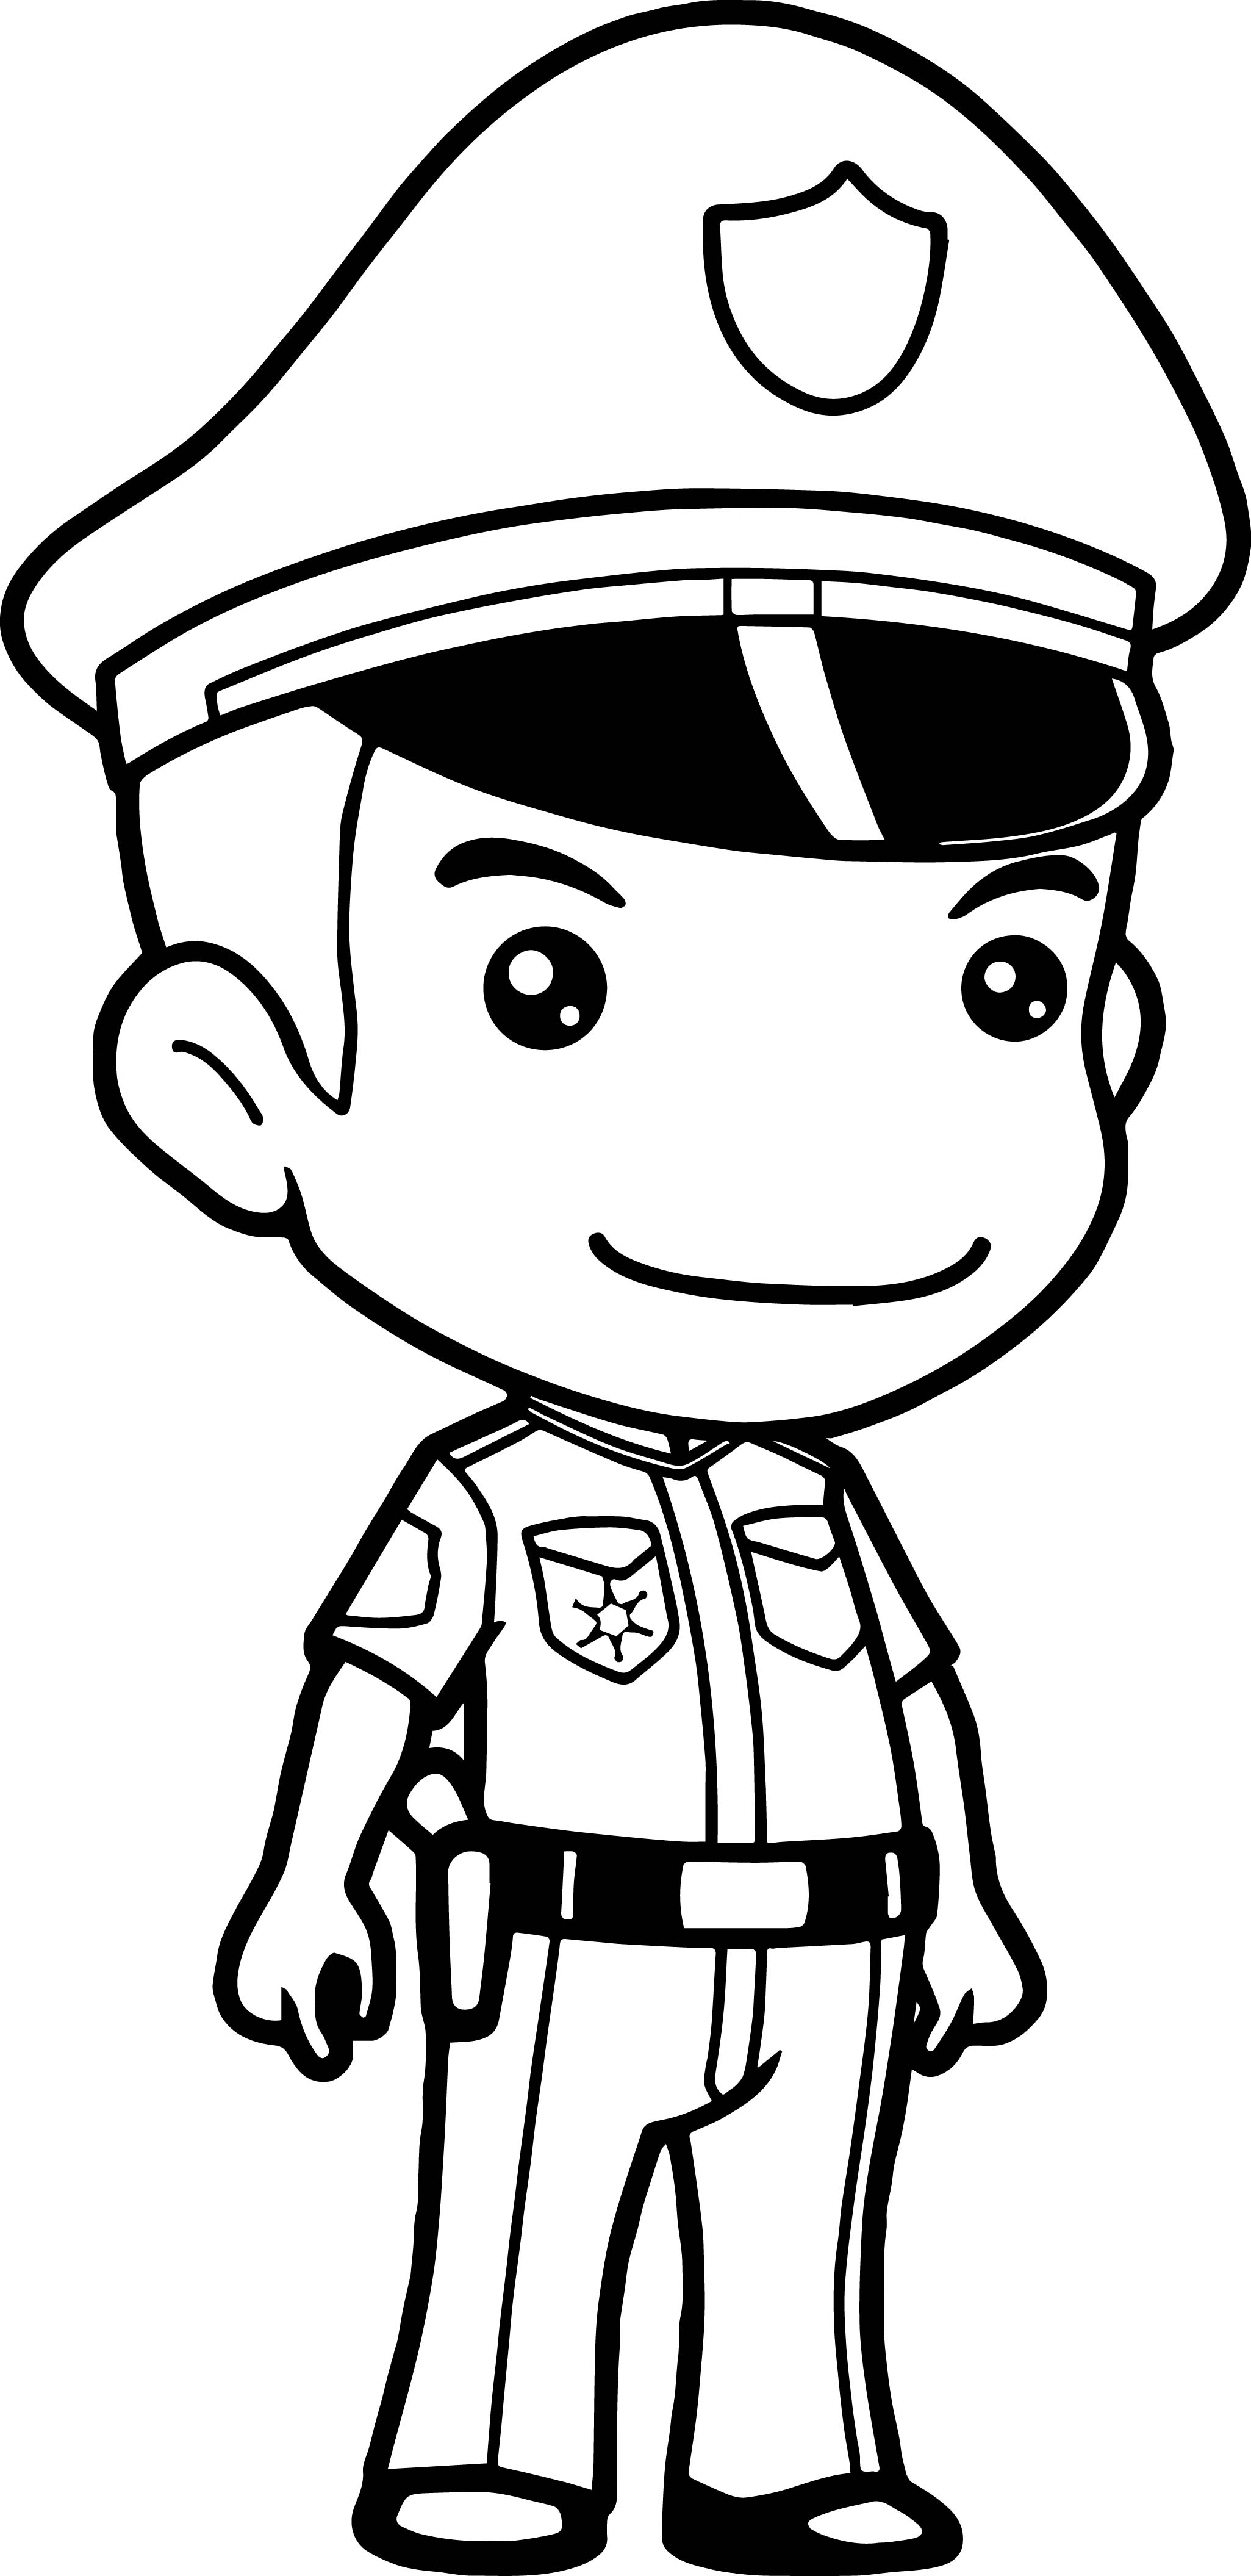 police coloring pages policeman coloring page coloring home police coloring pages